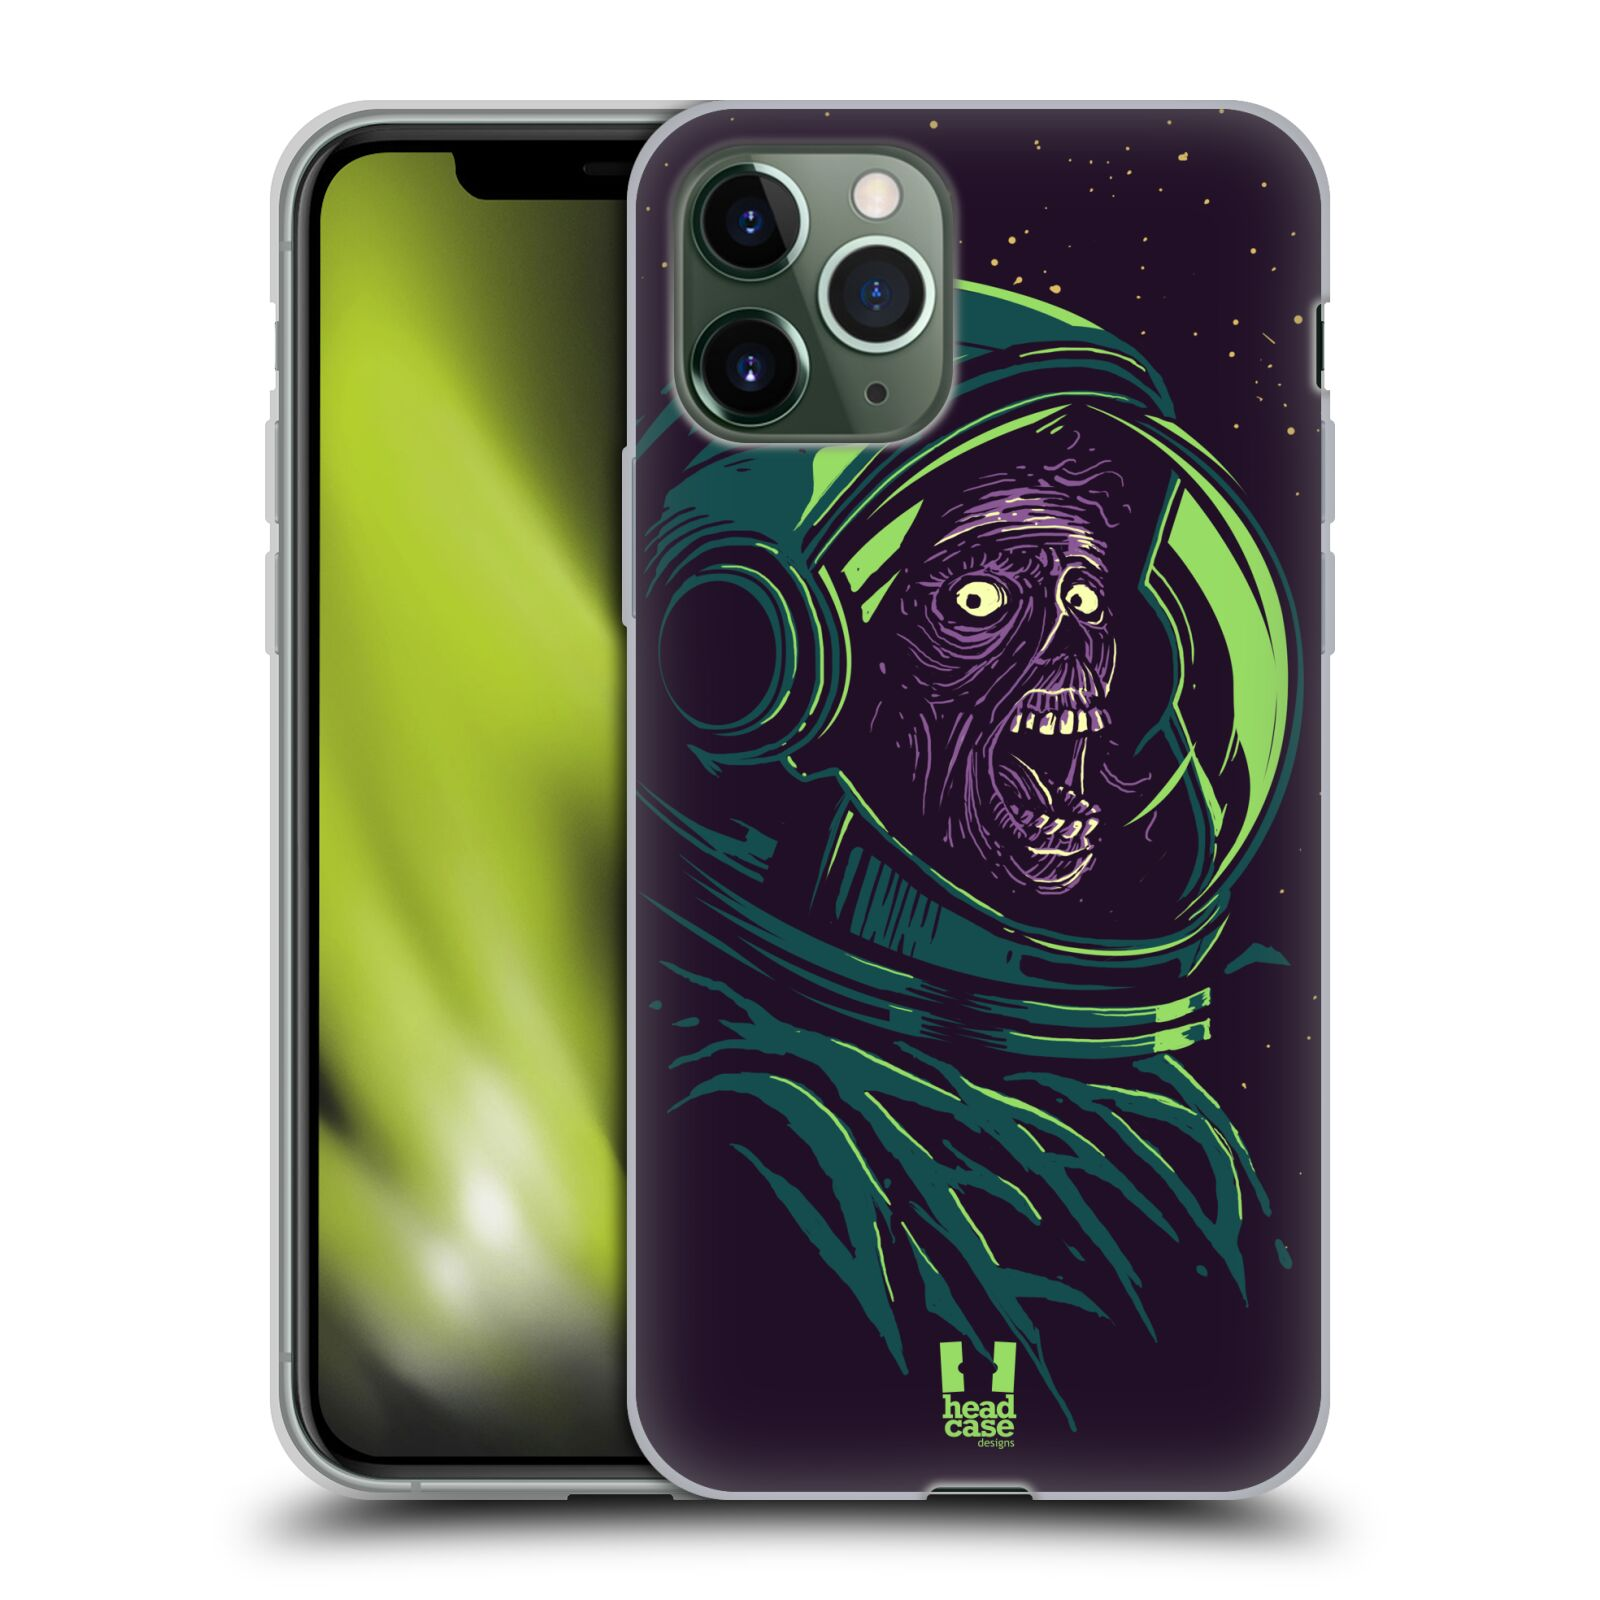 obal apple iphone 7 plus | Silikonové pouzdro na mobil Apple iPhone 11 Pro - Head Case - ZOMBIE VESMÍR